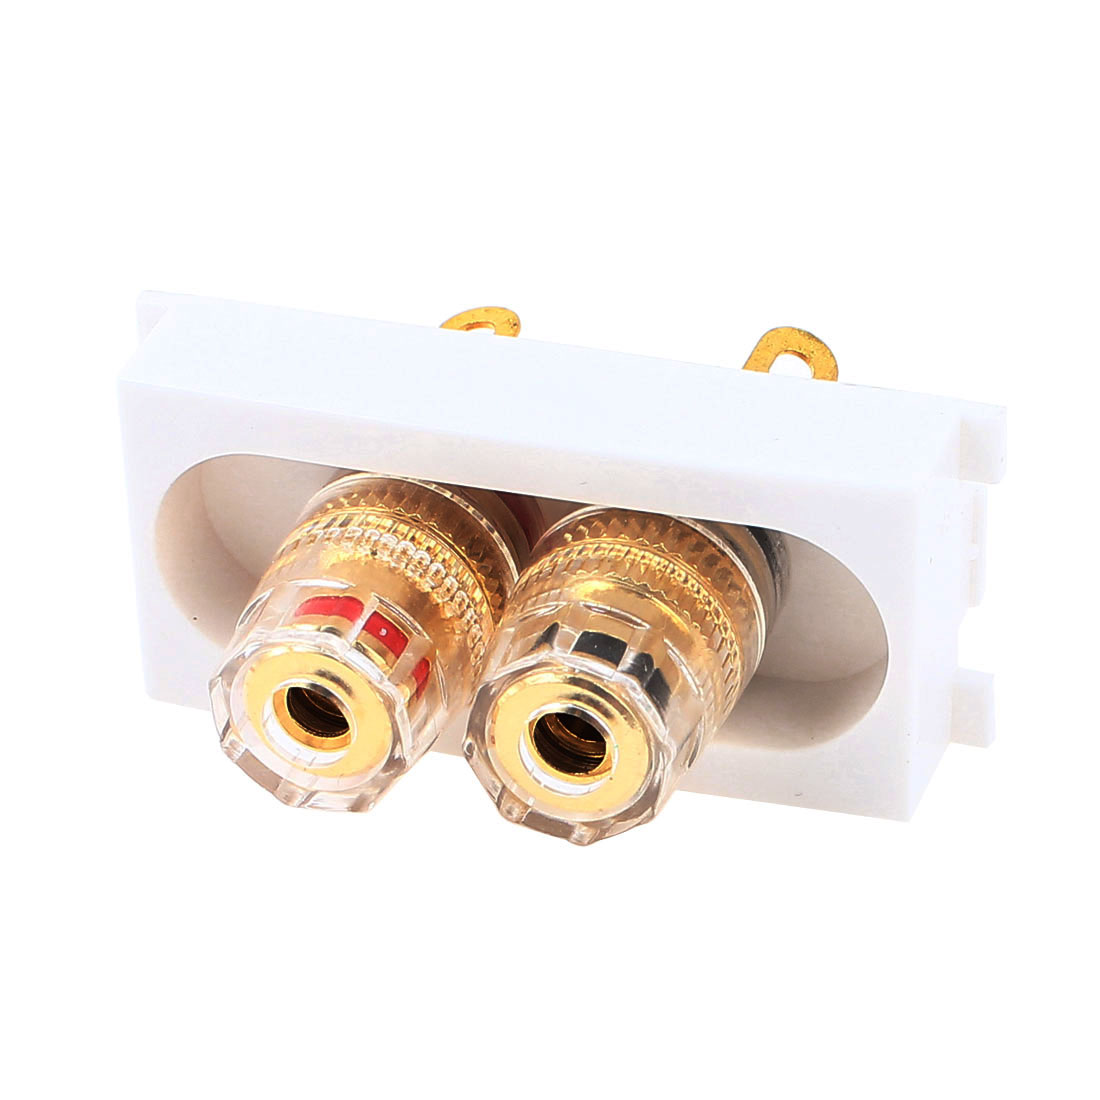 HiFi Audio Speaker Dual 4mm Banana Jack Binding Post Module Wall Panel Plate